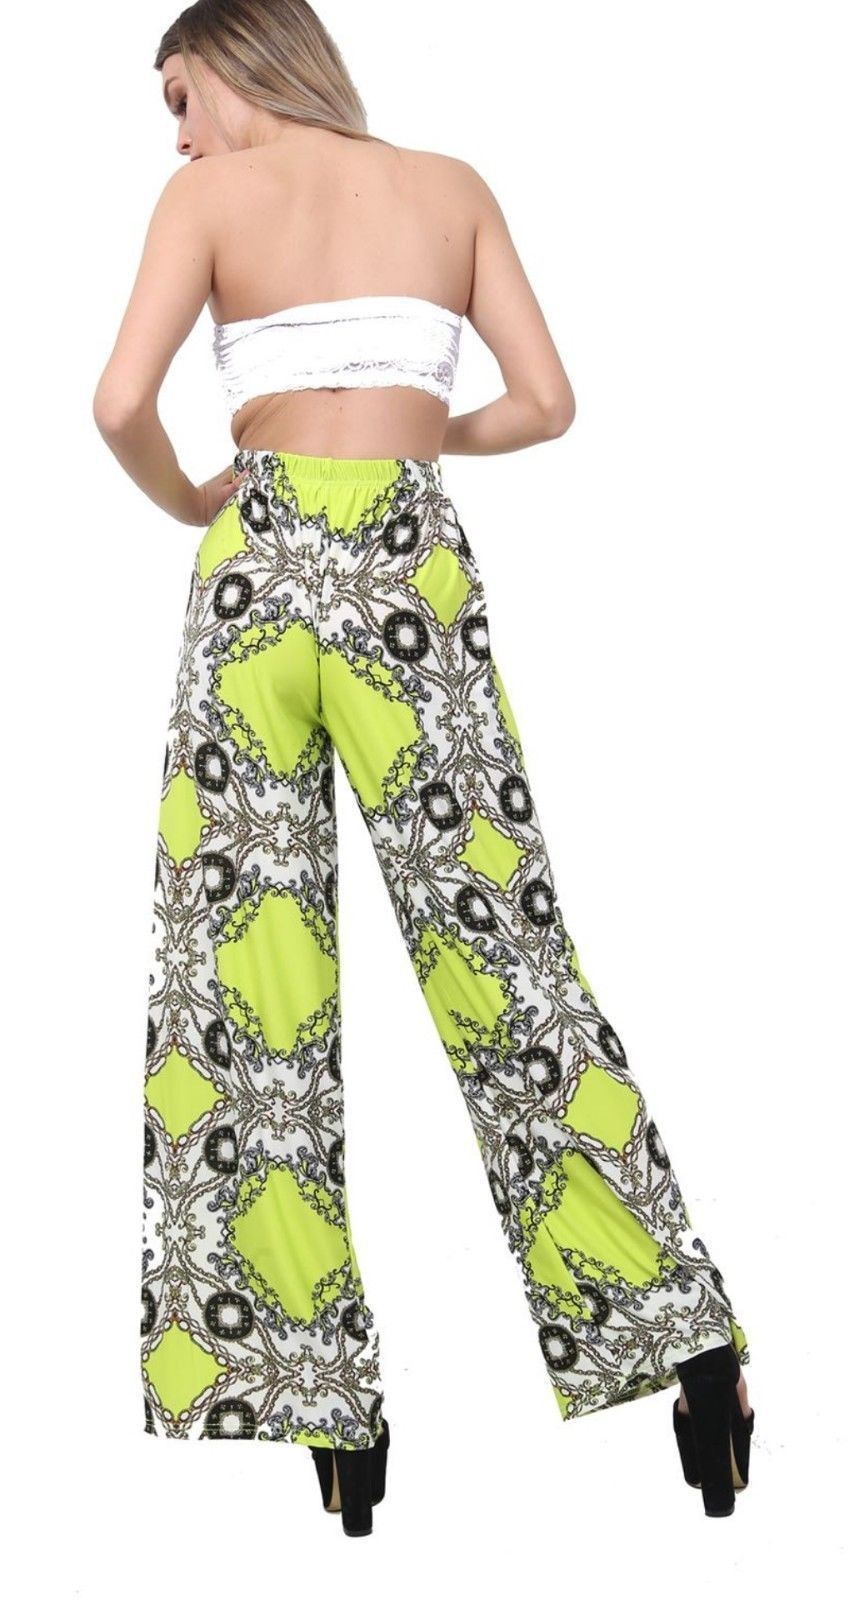 New-Ladies-Floral-Printed-Wide-Leg-Flared-Parallel-Baggy-Trousers-Pants-Palazzo thumbnail 68